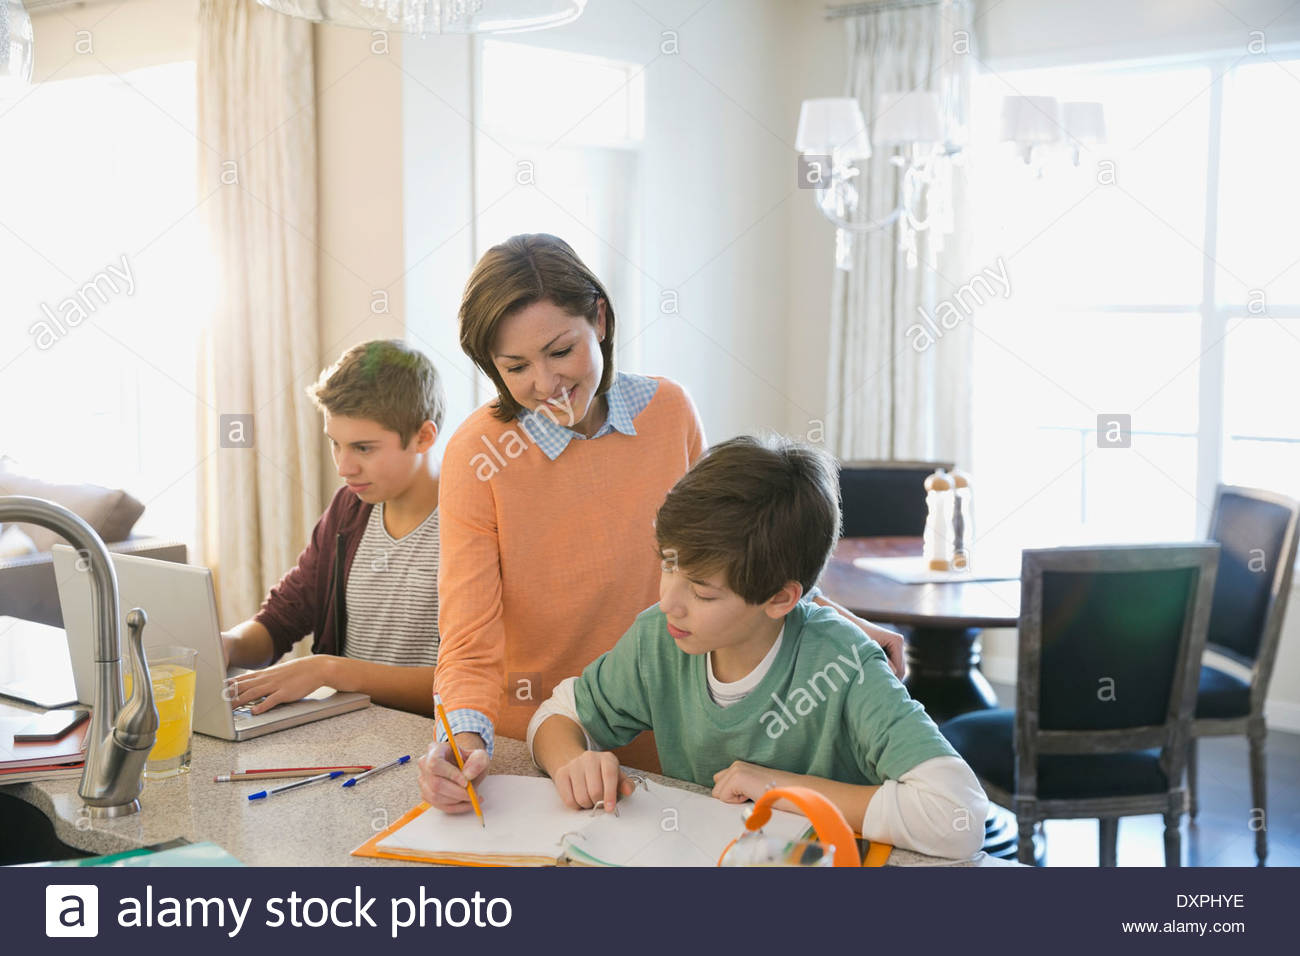 Woman assisting son with homework - Stock Image